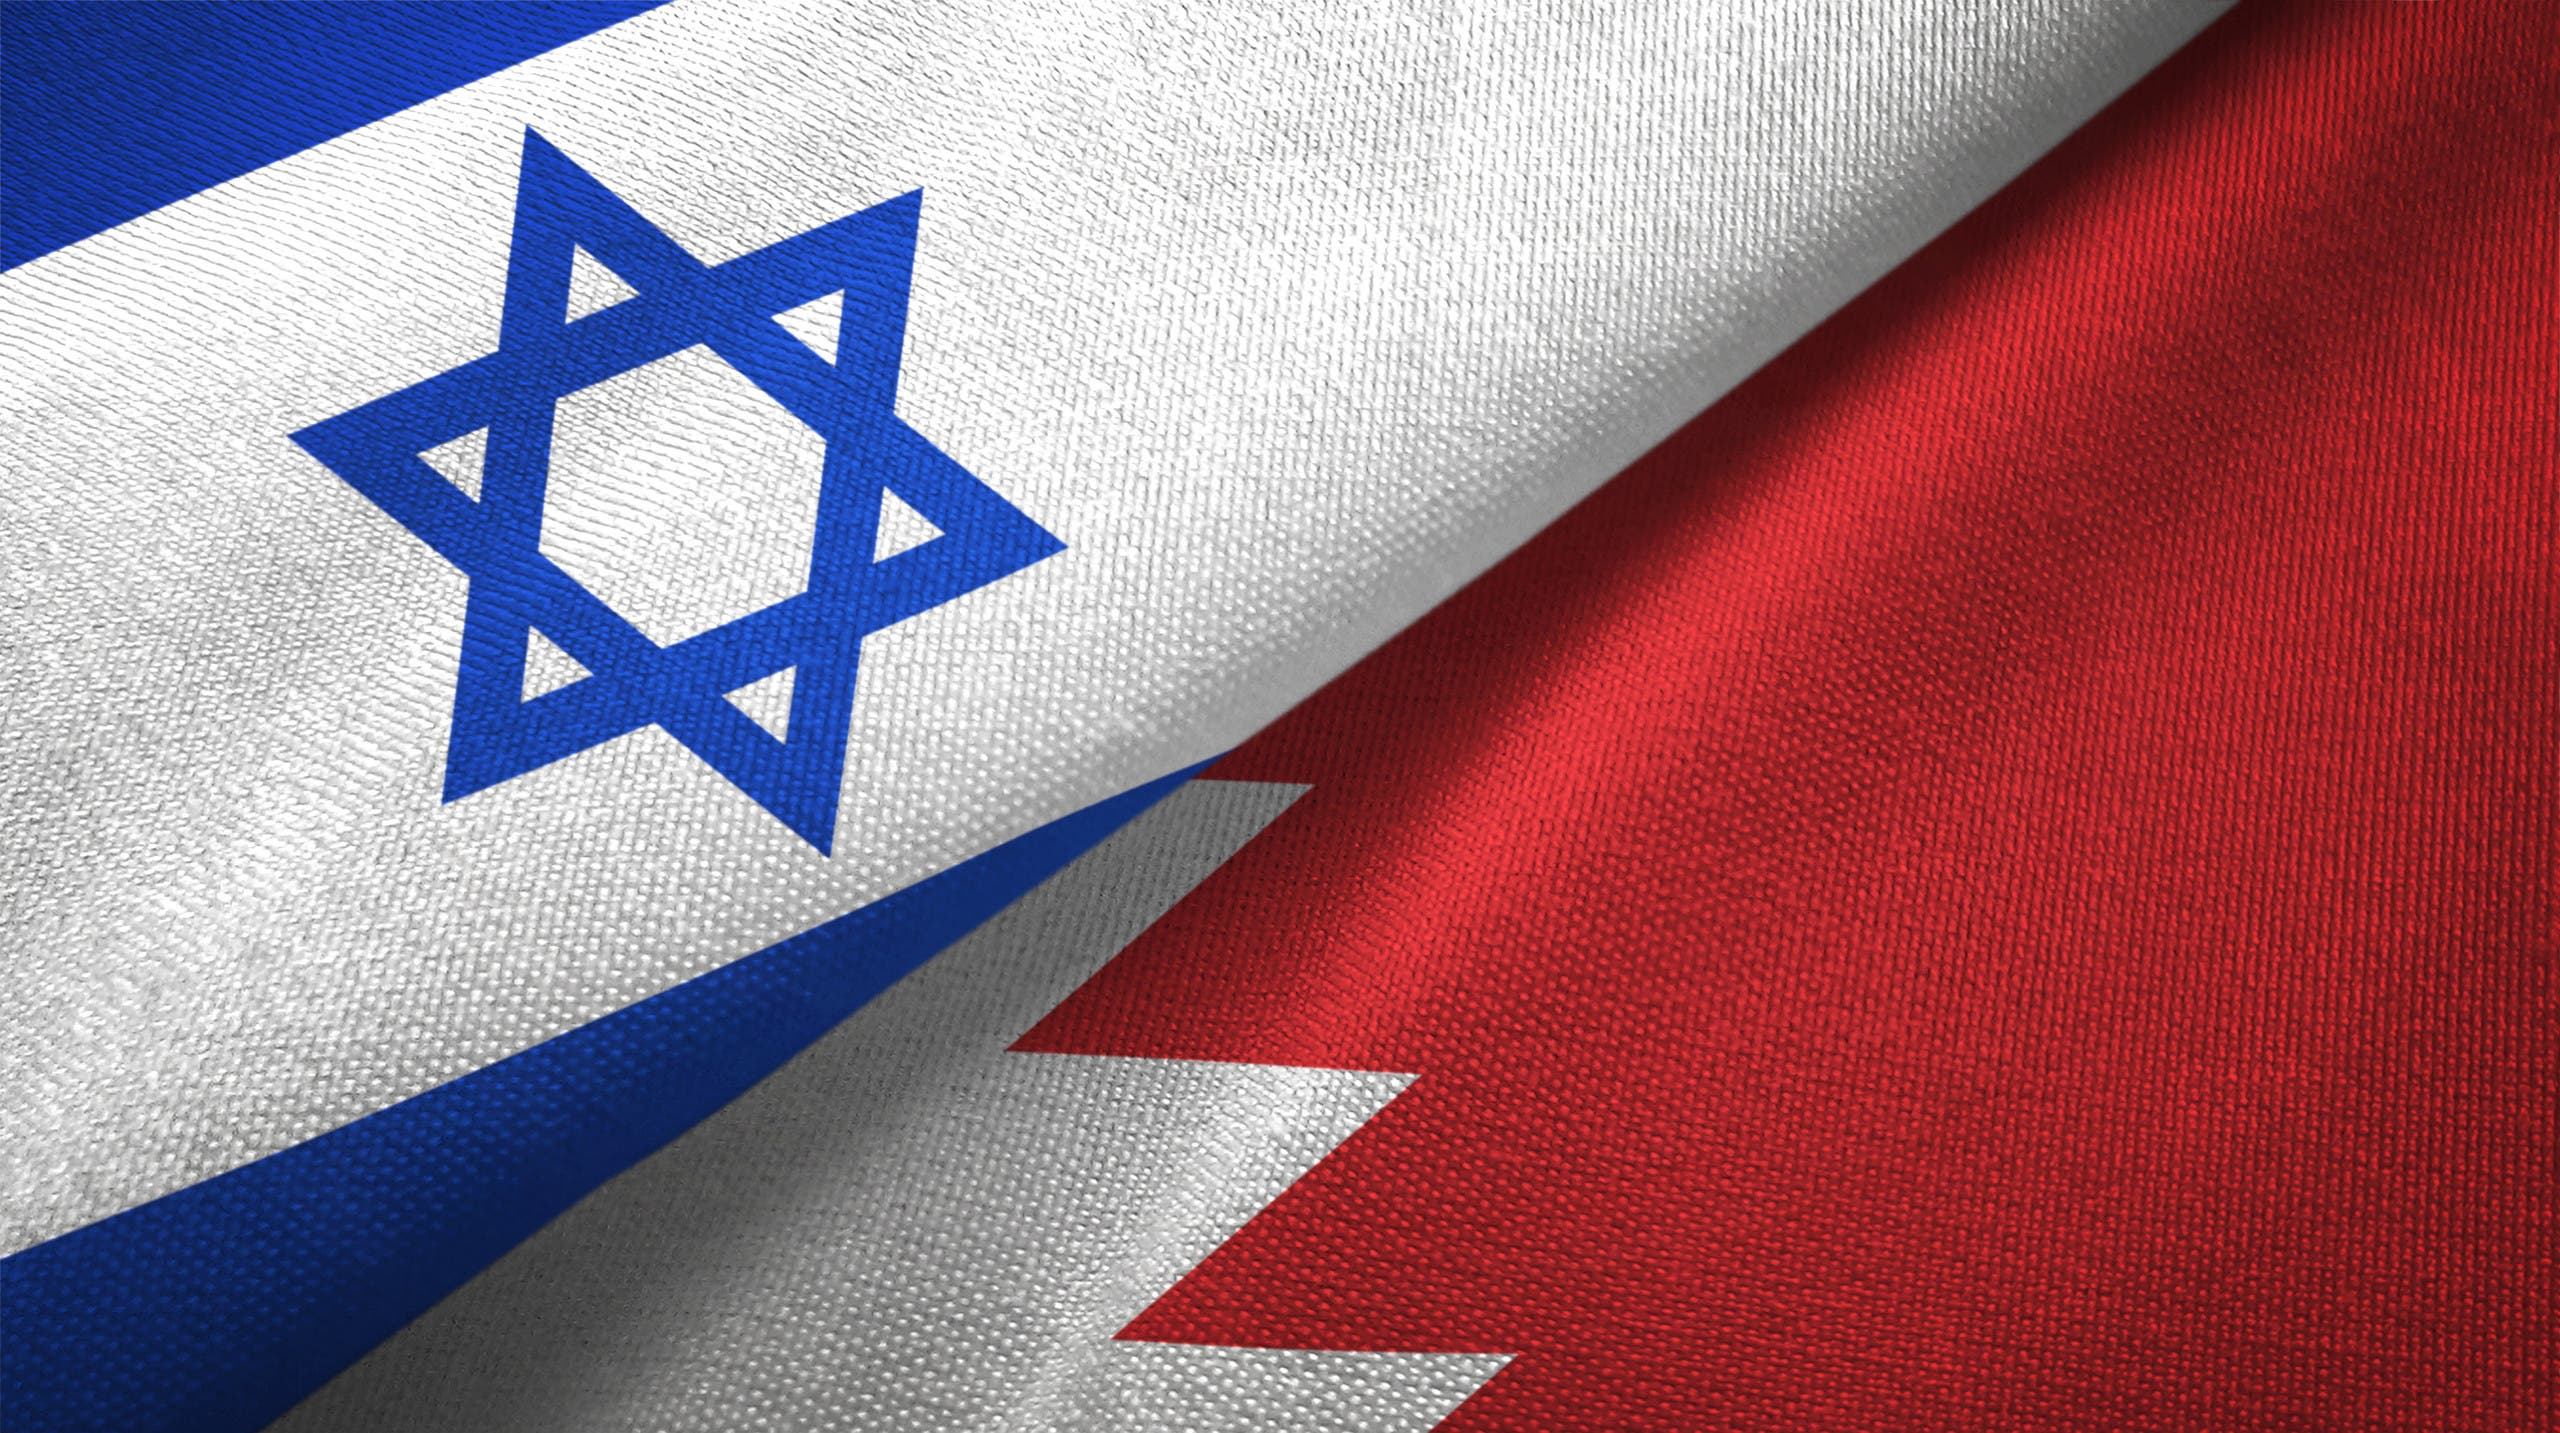 The flags of Bahrain and Israel. (Stock Photo)